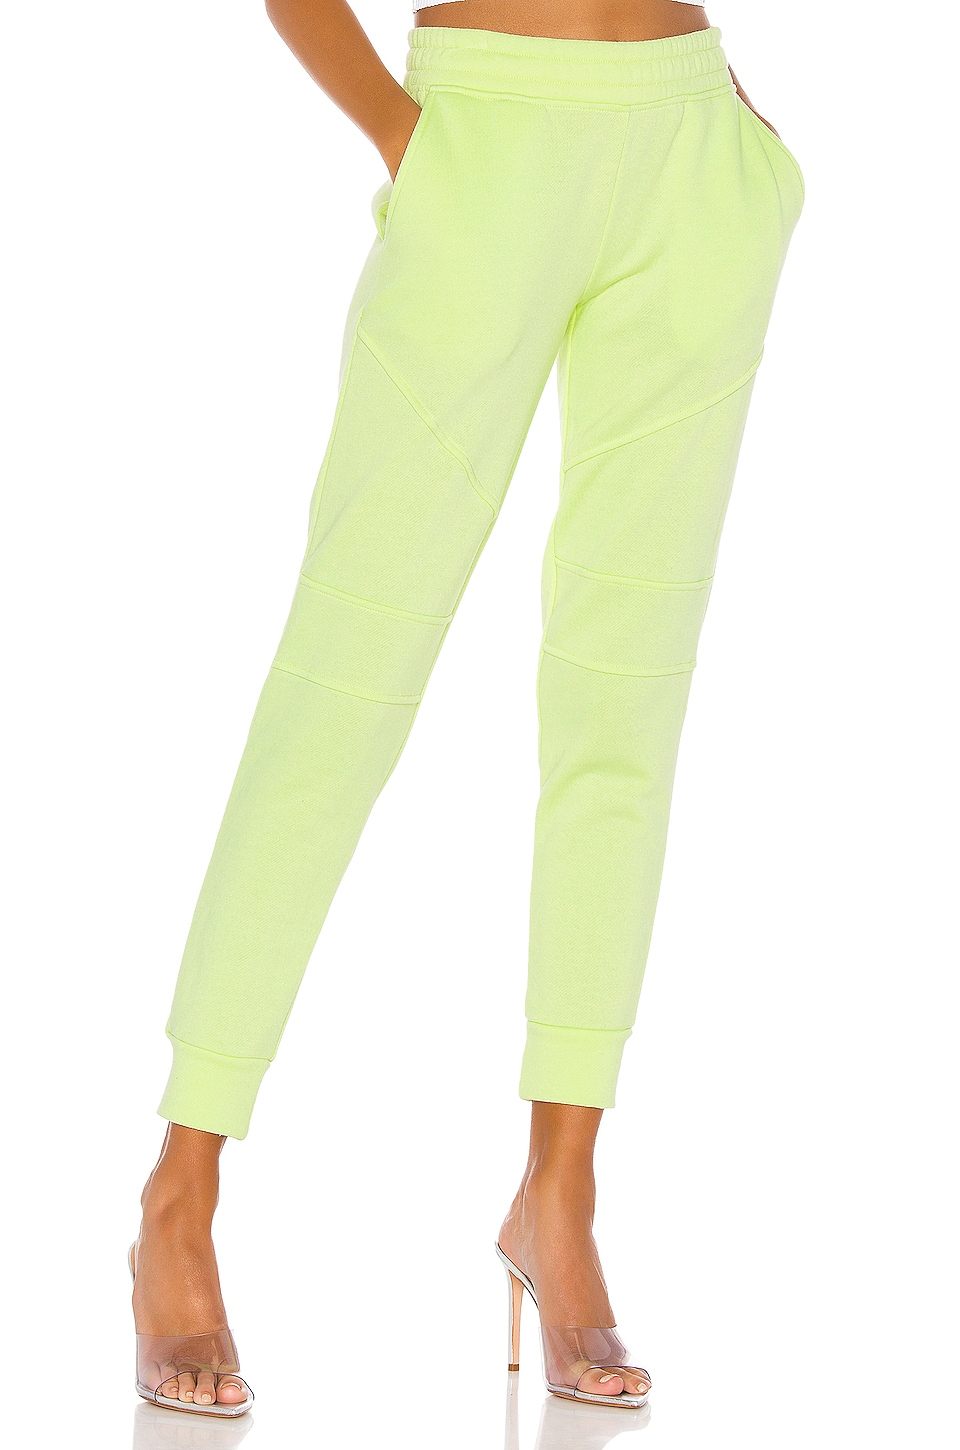 Generation Love Coco Sweatpant in Neon Yellow